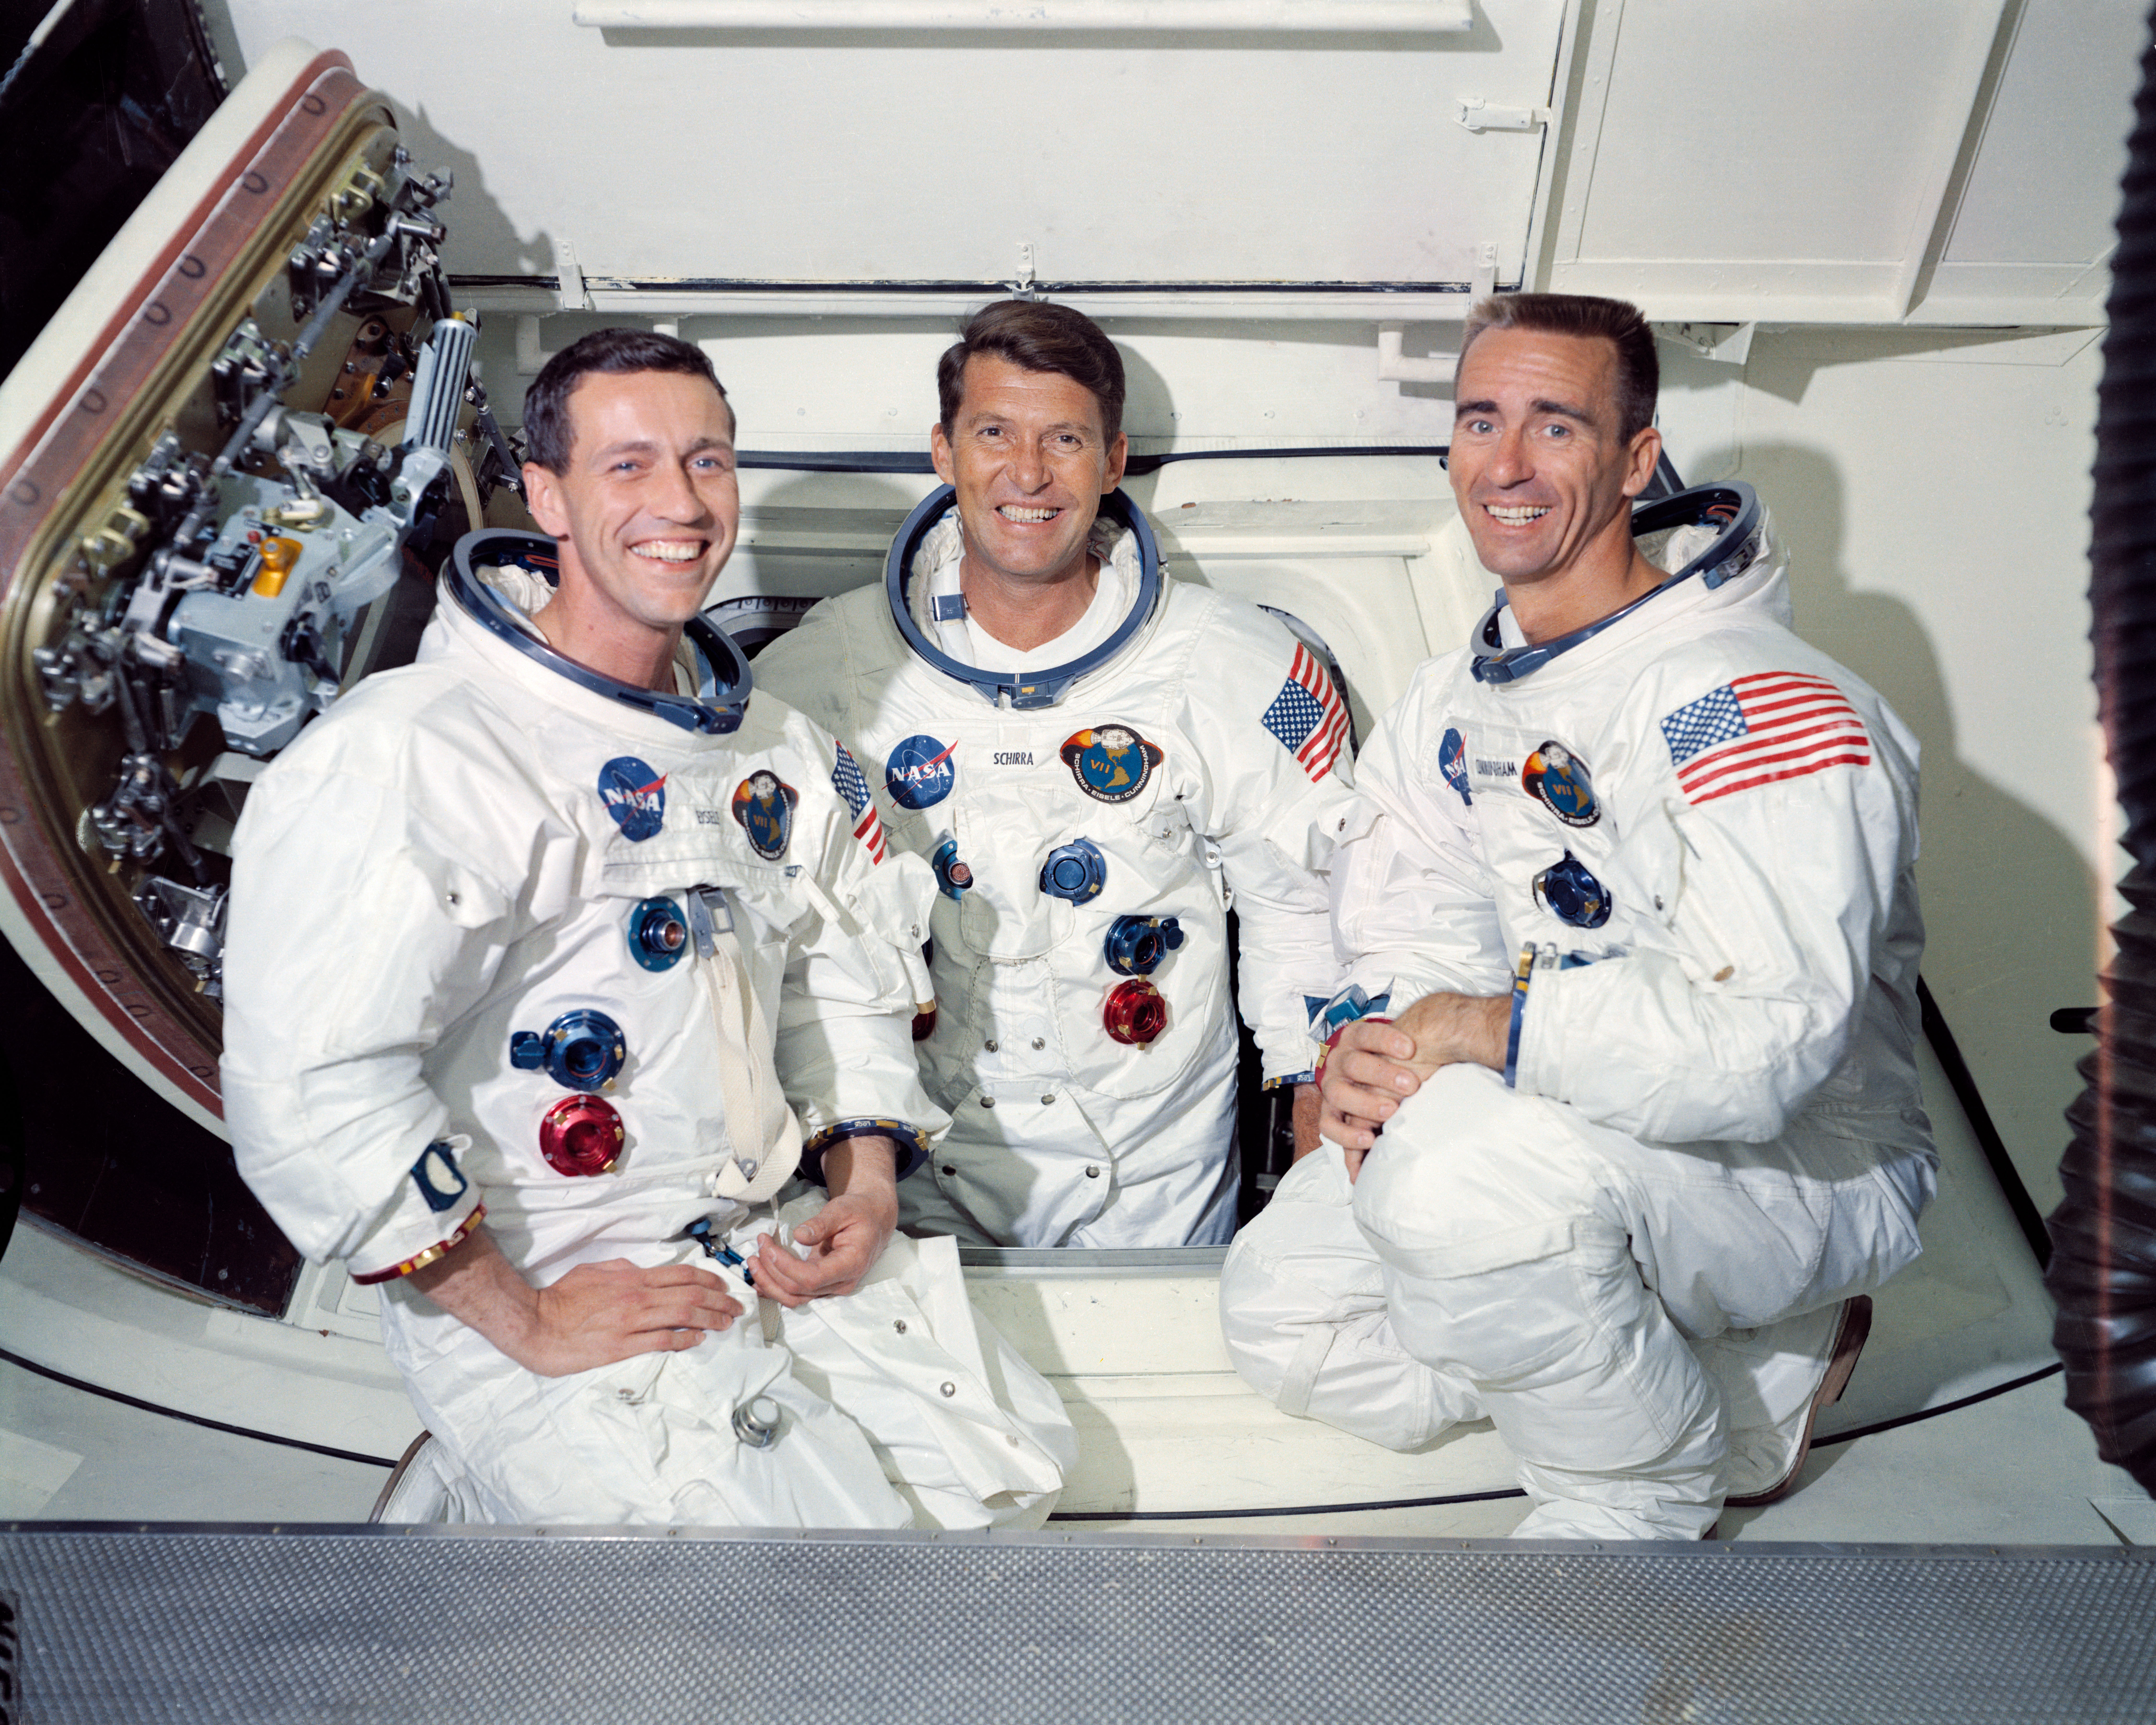 about apollo 7 the first crewed apollo space mission nasa. Black Bedroom Furniture Sets. Home Design Ideas